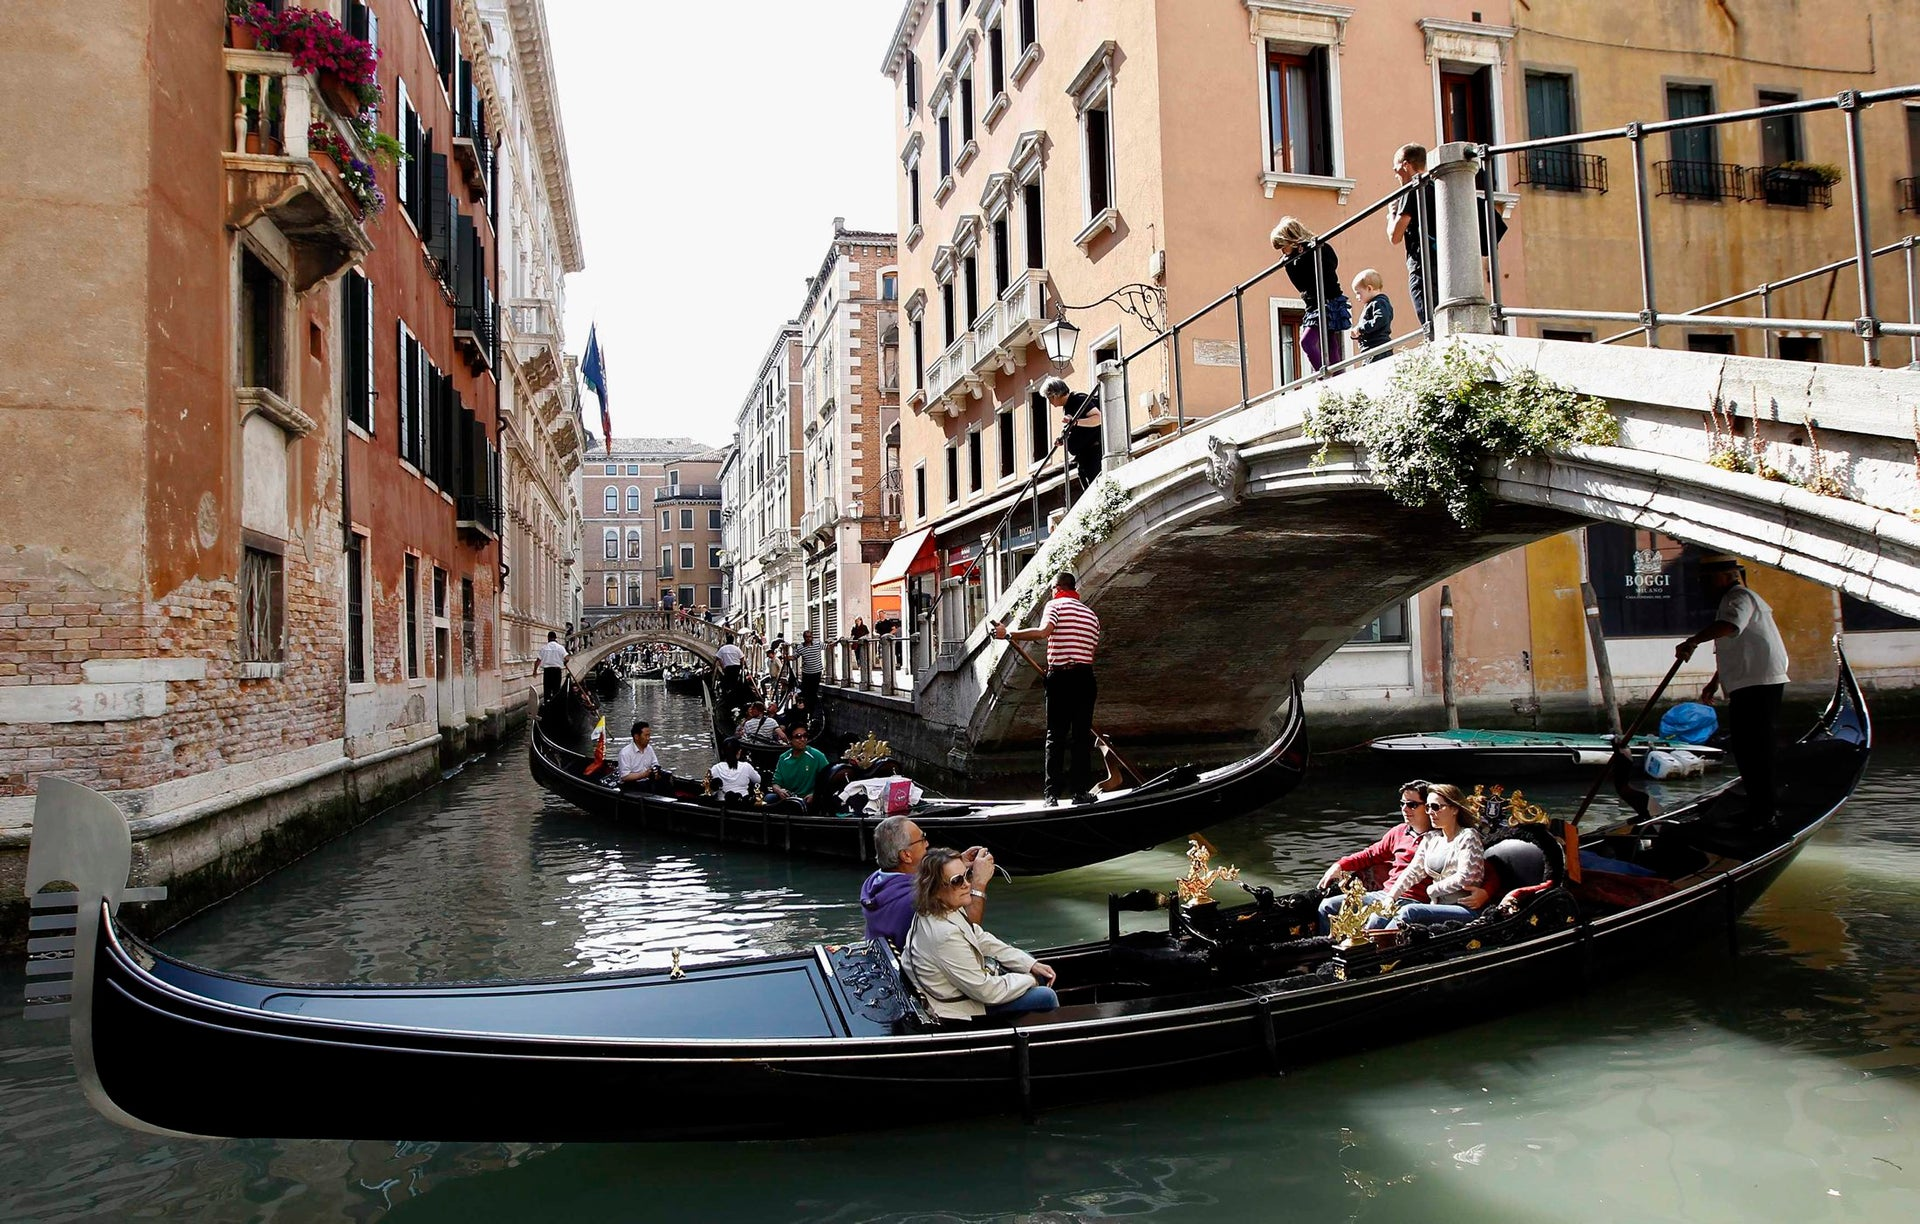 Gondoliers row gondolas with tourists in a canal in Venice.